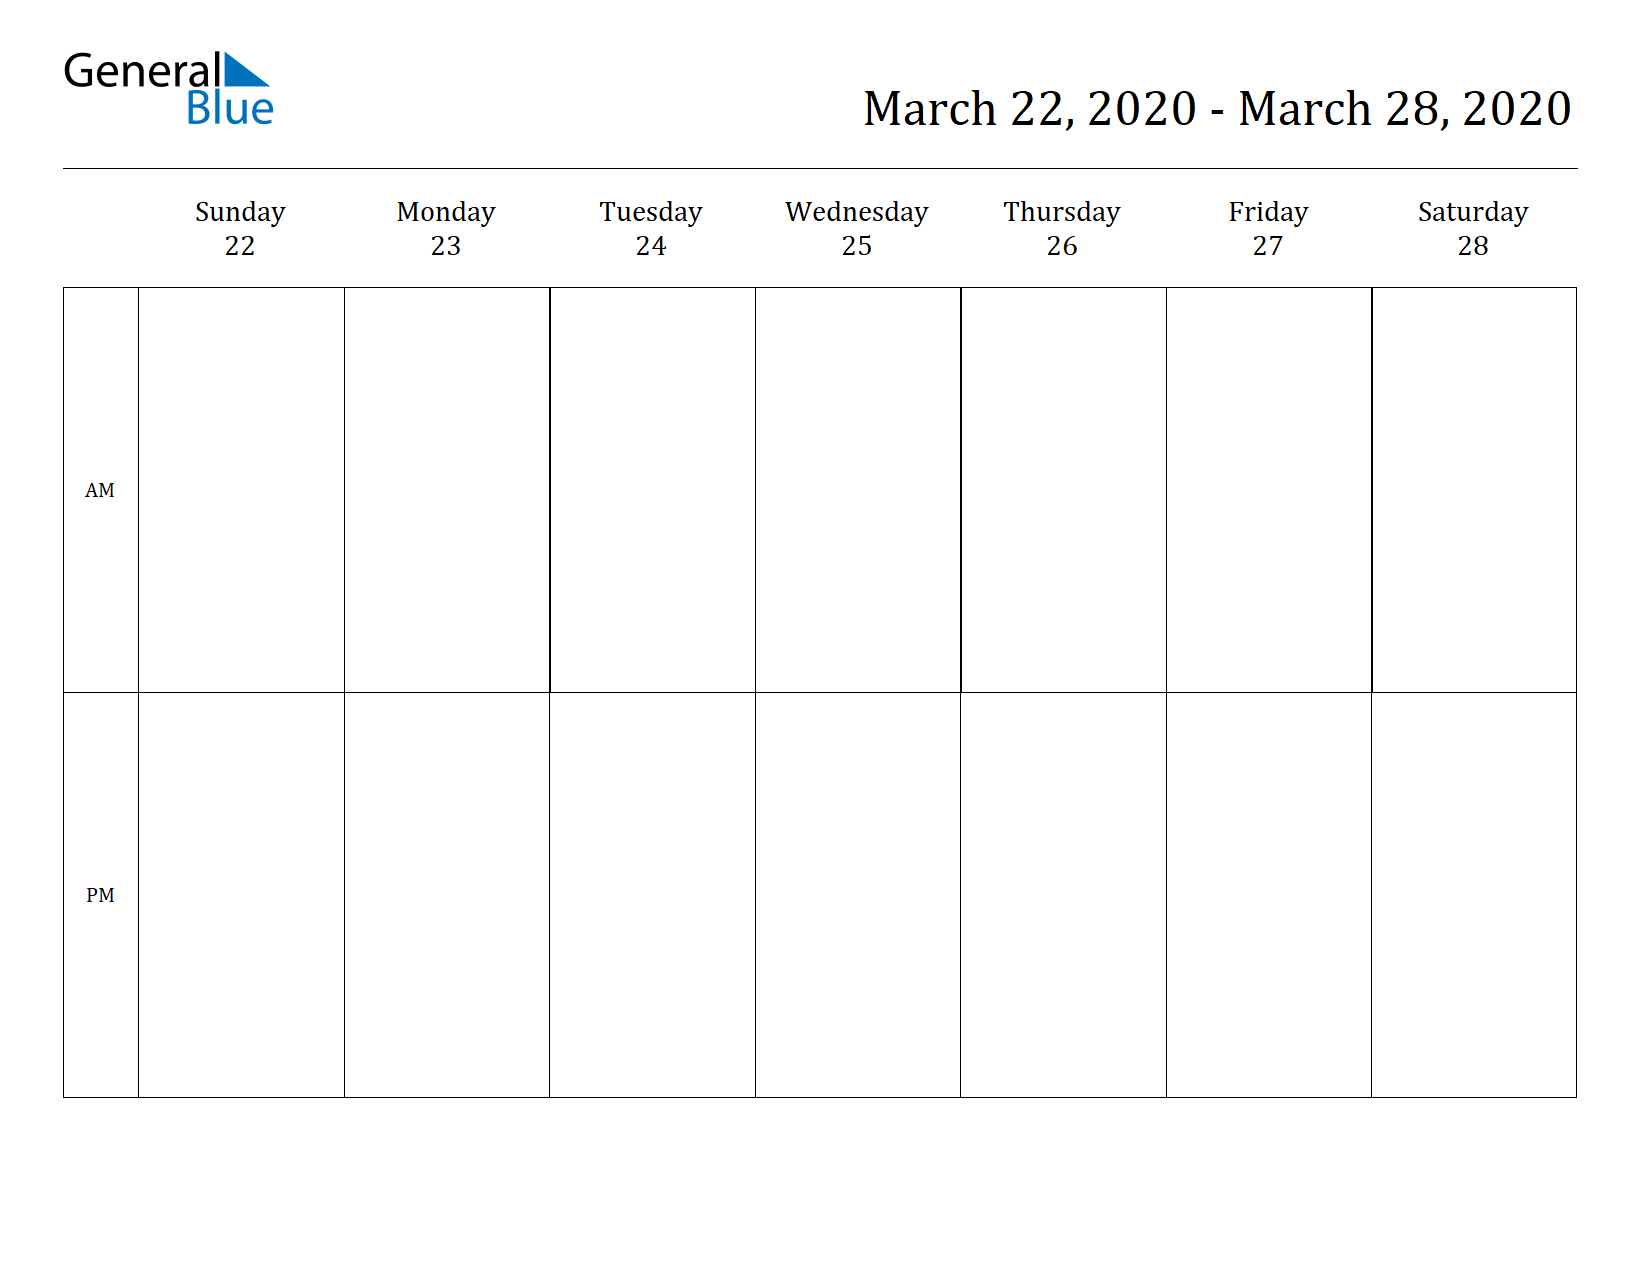 Weekly Calendar for Mar 22, 2020 to Mar 28, 2020